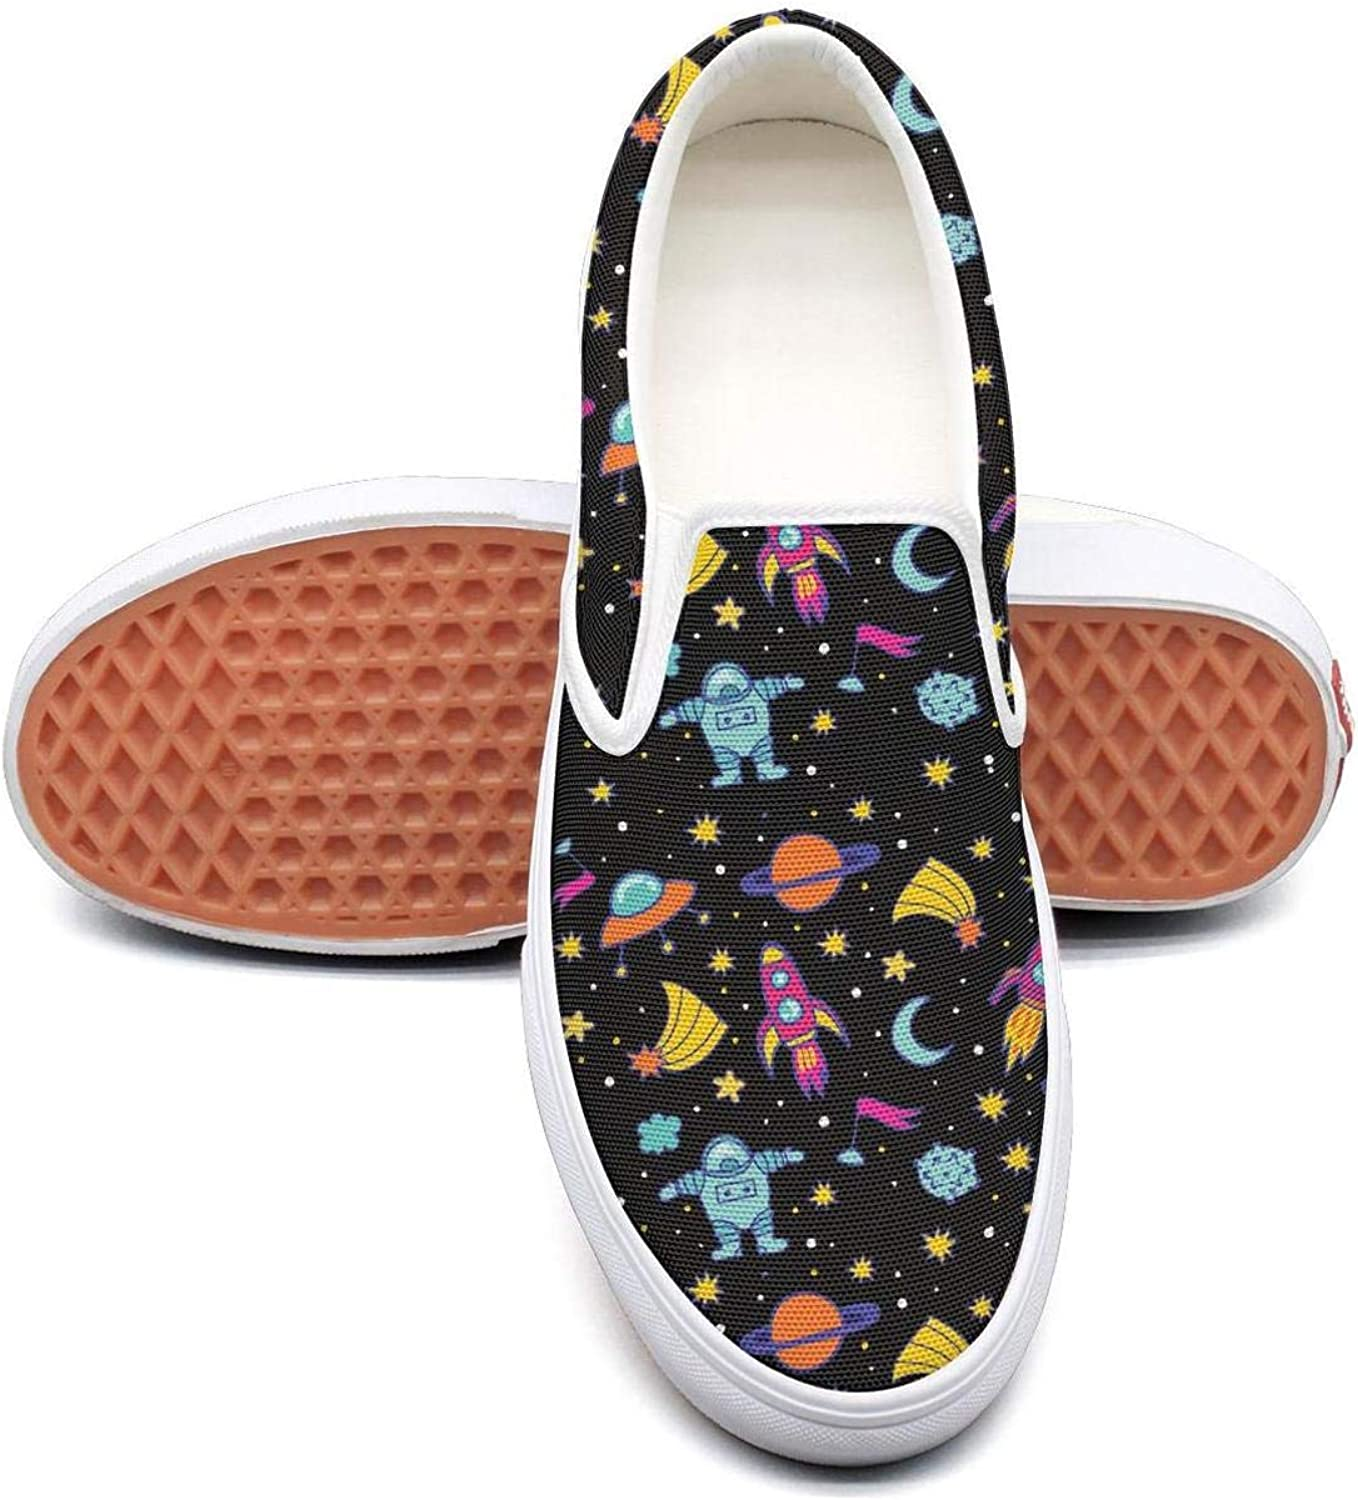 Feenfling Astronaut Star Sky Planet Womens Navy Slip on Low Top Canvas Tennis shoes